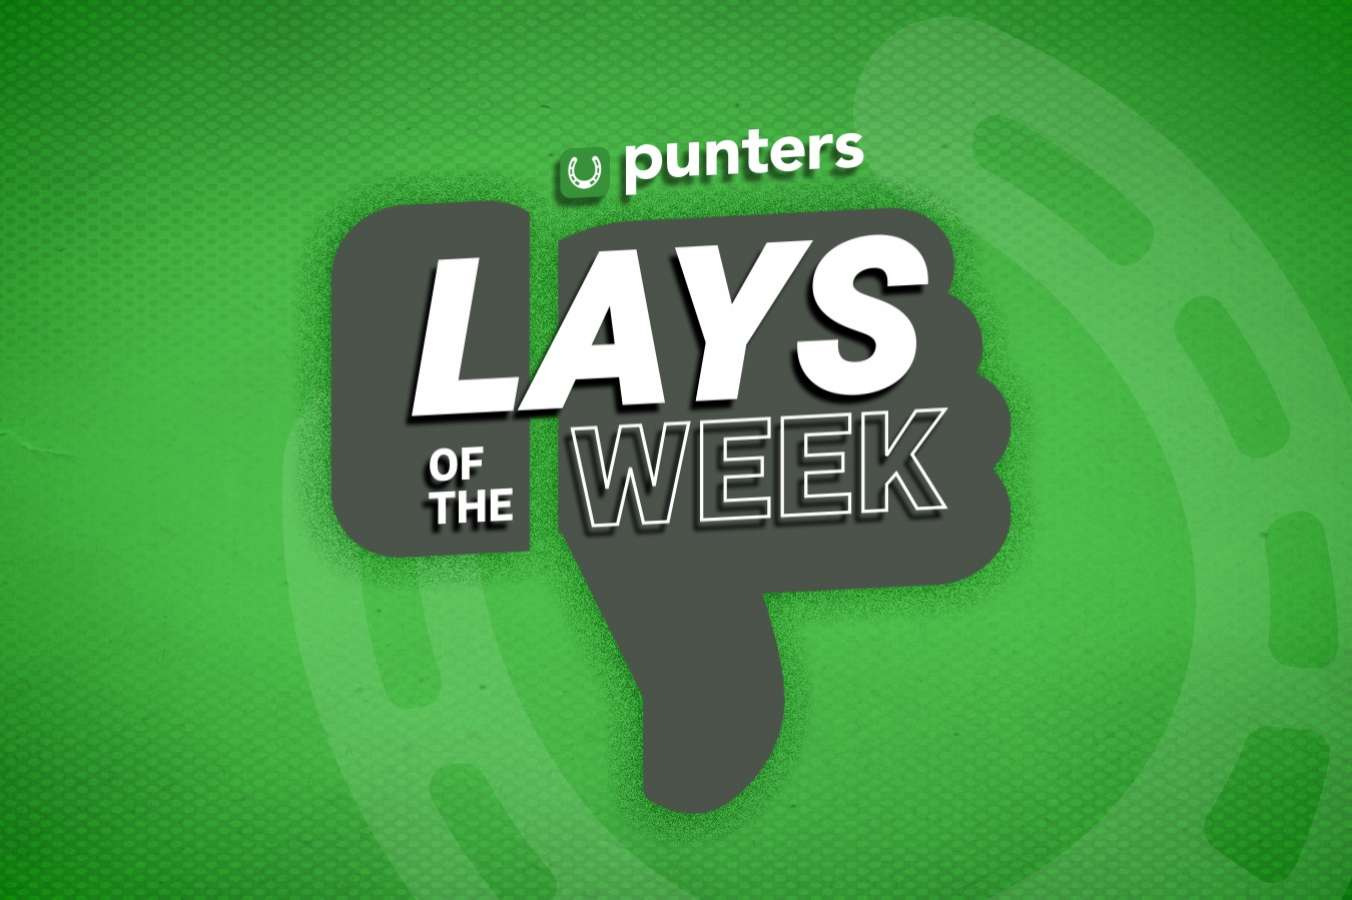 Lays of the week: Horses we're taking on this Saturday, April 10